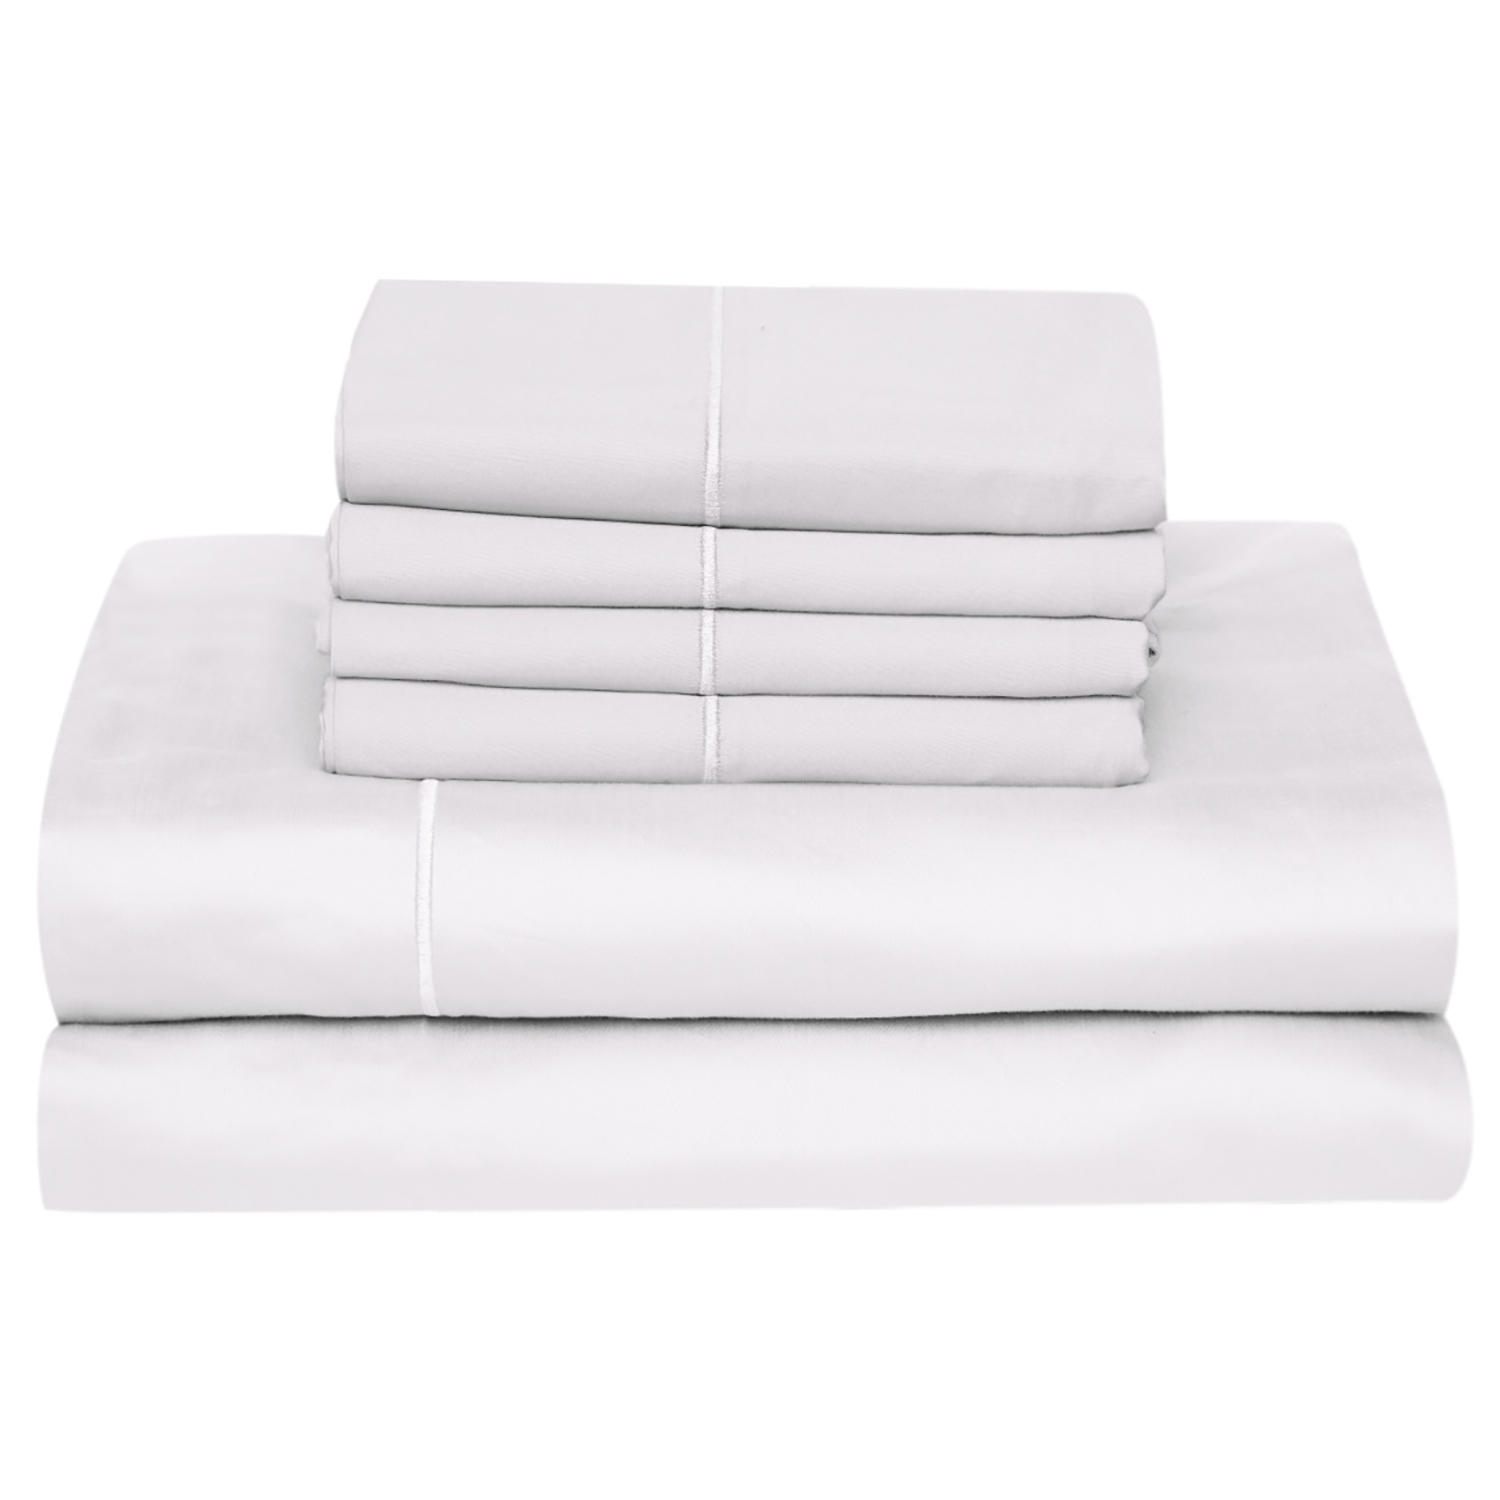 Hotel Luxury Reserve Collection 1000-Thread-Count Egyptian Cotton Sheet Set